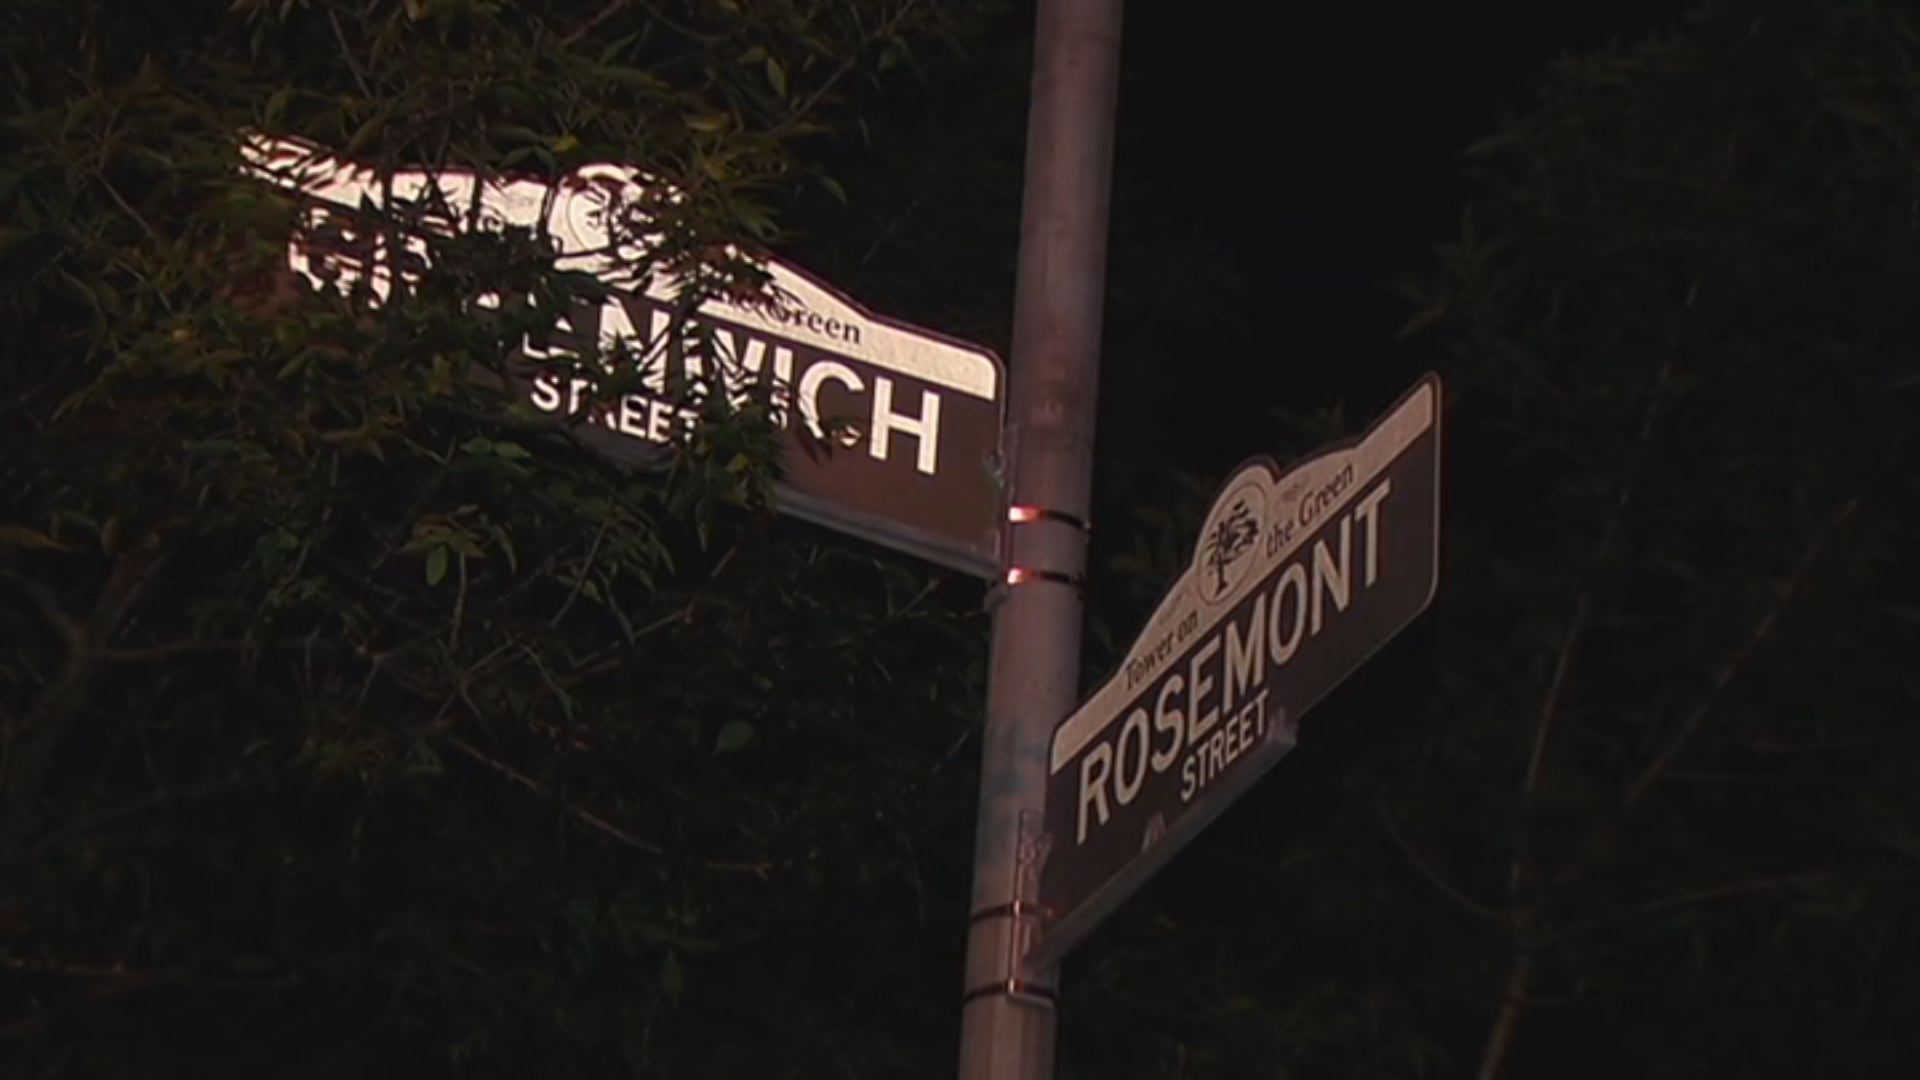 One person was shot on Rosemont Street in Hartford last night.